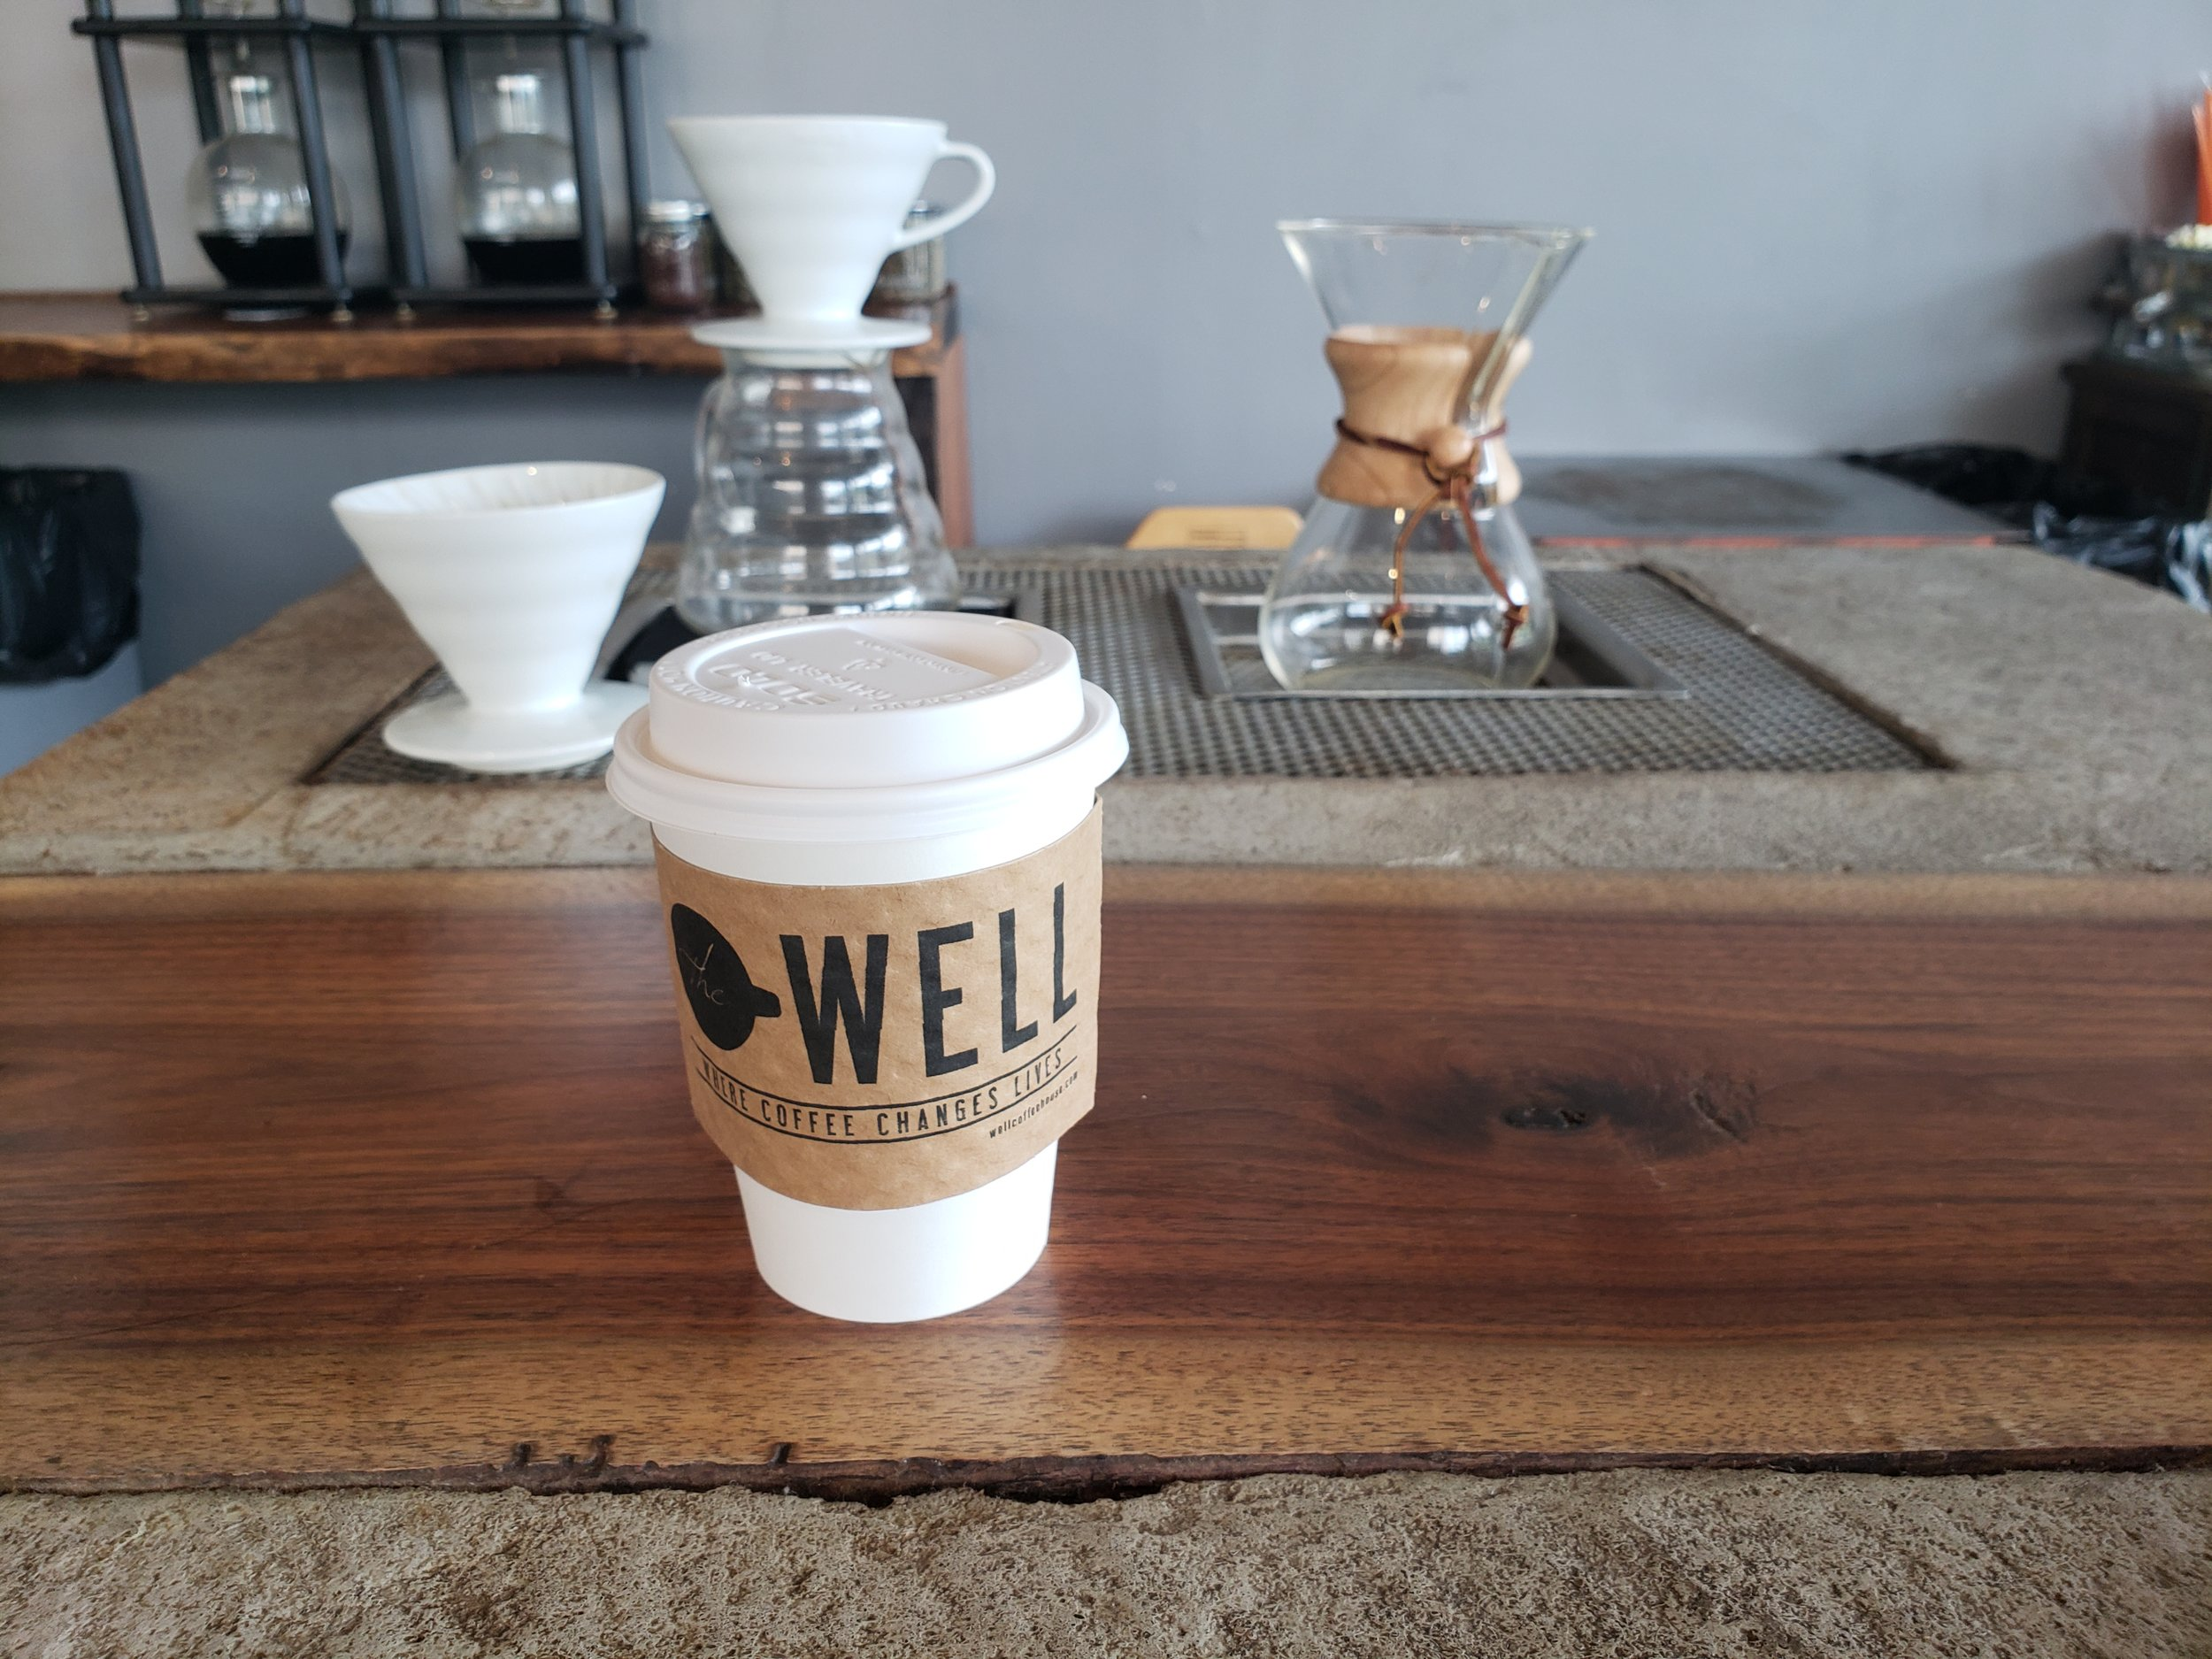 The Well Coffeehouse - You know we are coffee-obsessed girls! After breakfast, I stumbled on The Well Coffeehouse. Sipping from a cup at The Well means more than enjoying a great tasting latte or tea (and believe me, the latte I had was amazing…A-MAZE-ING). The coffee shop is a non-profit that funnels the money from the shop back into the community. Your cup of coffee provides clean water wells across the continent of Africa. Everything about The Well, from the décor of the coffee shop to the quality of their drinks was perfection and it will continue to be a stop on many Nashville trips to come.